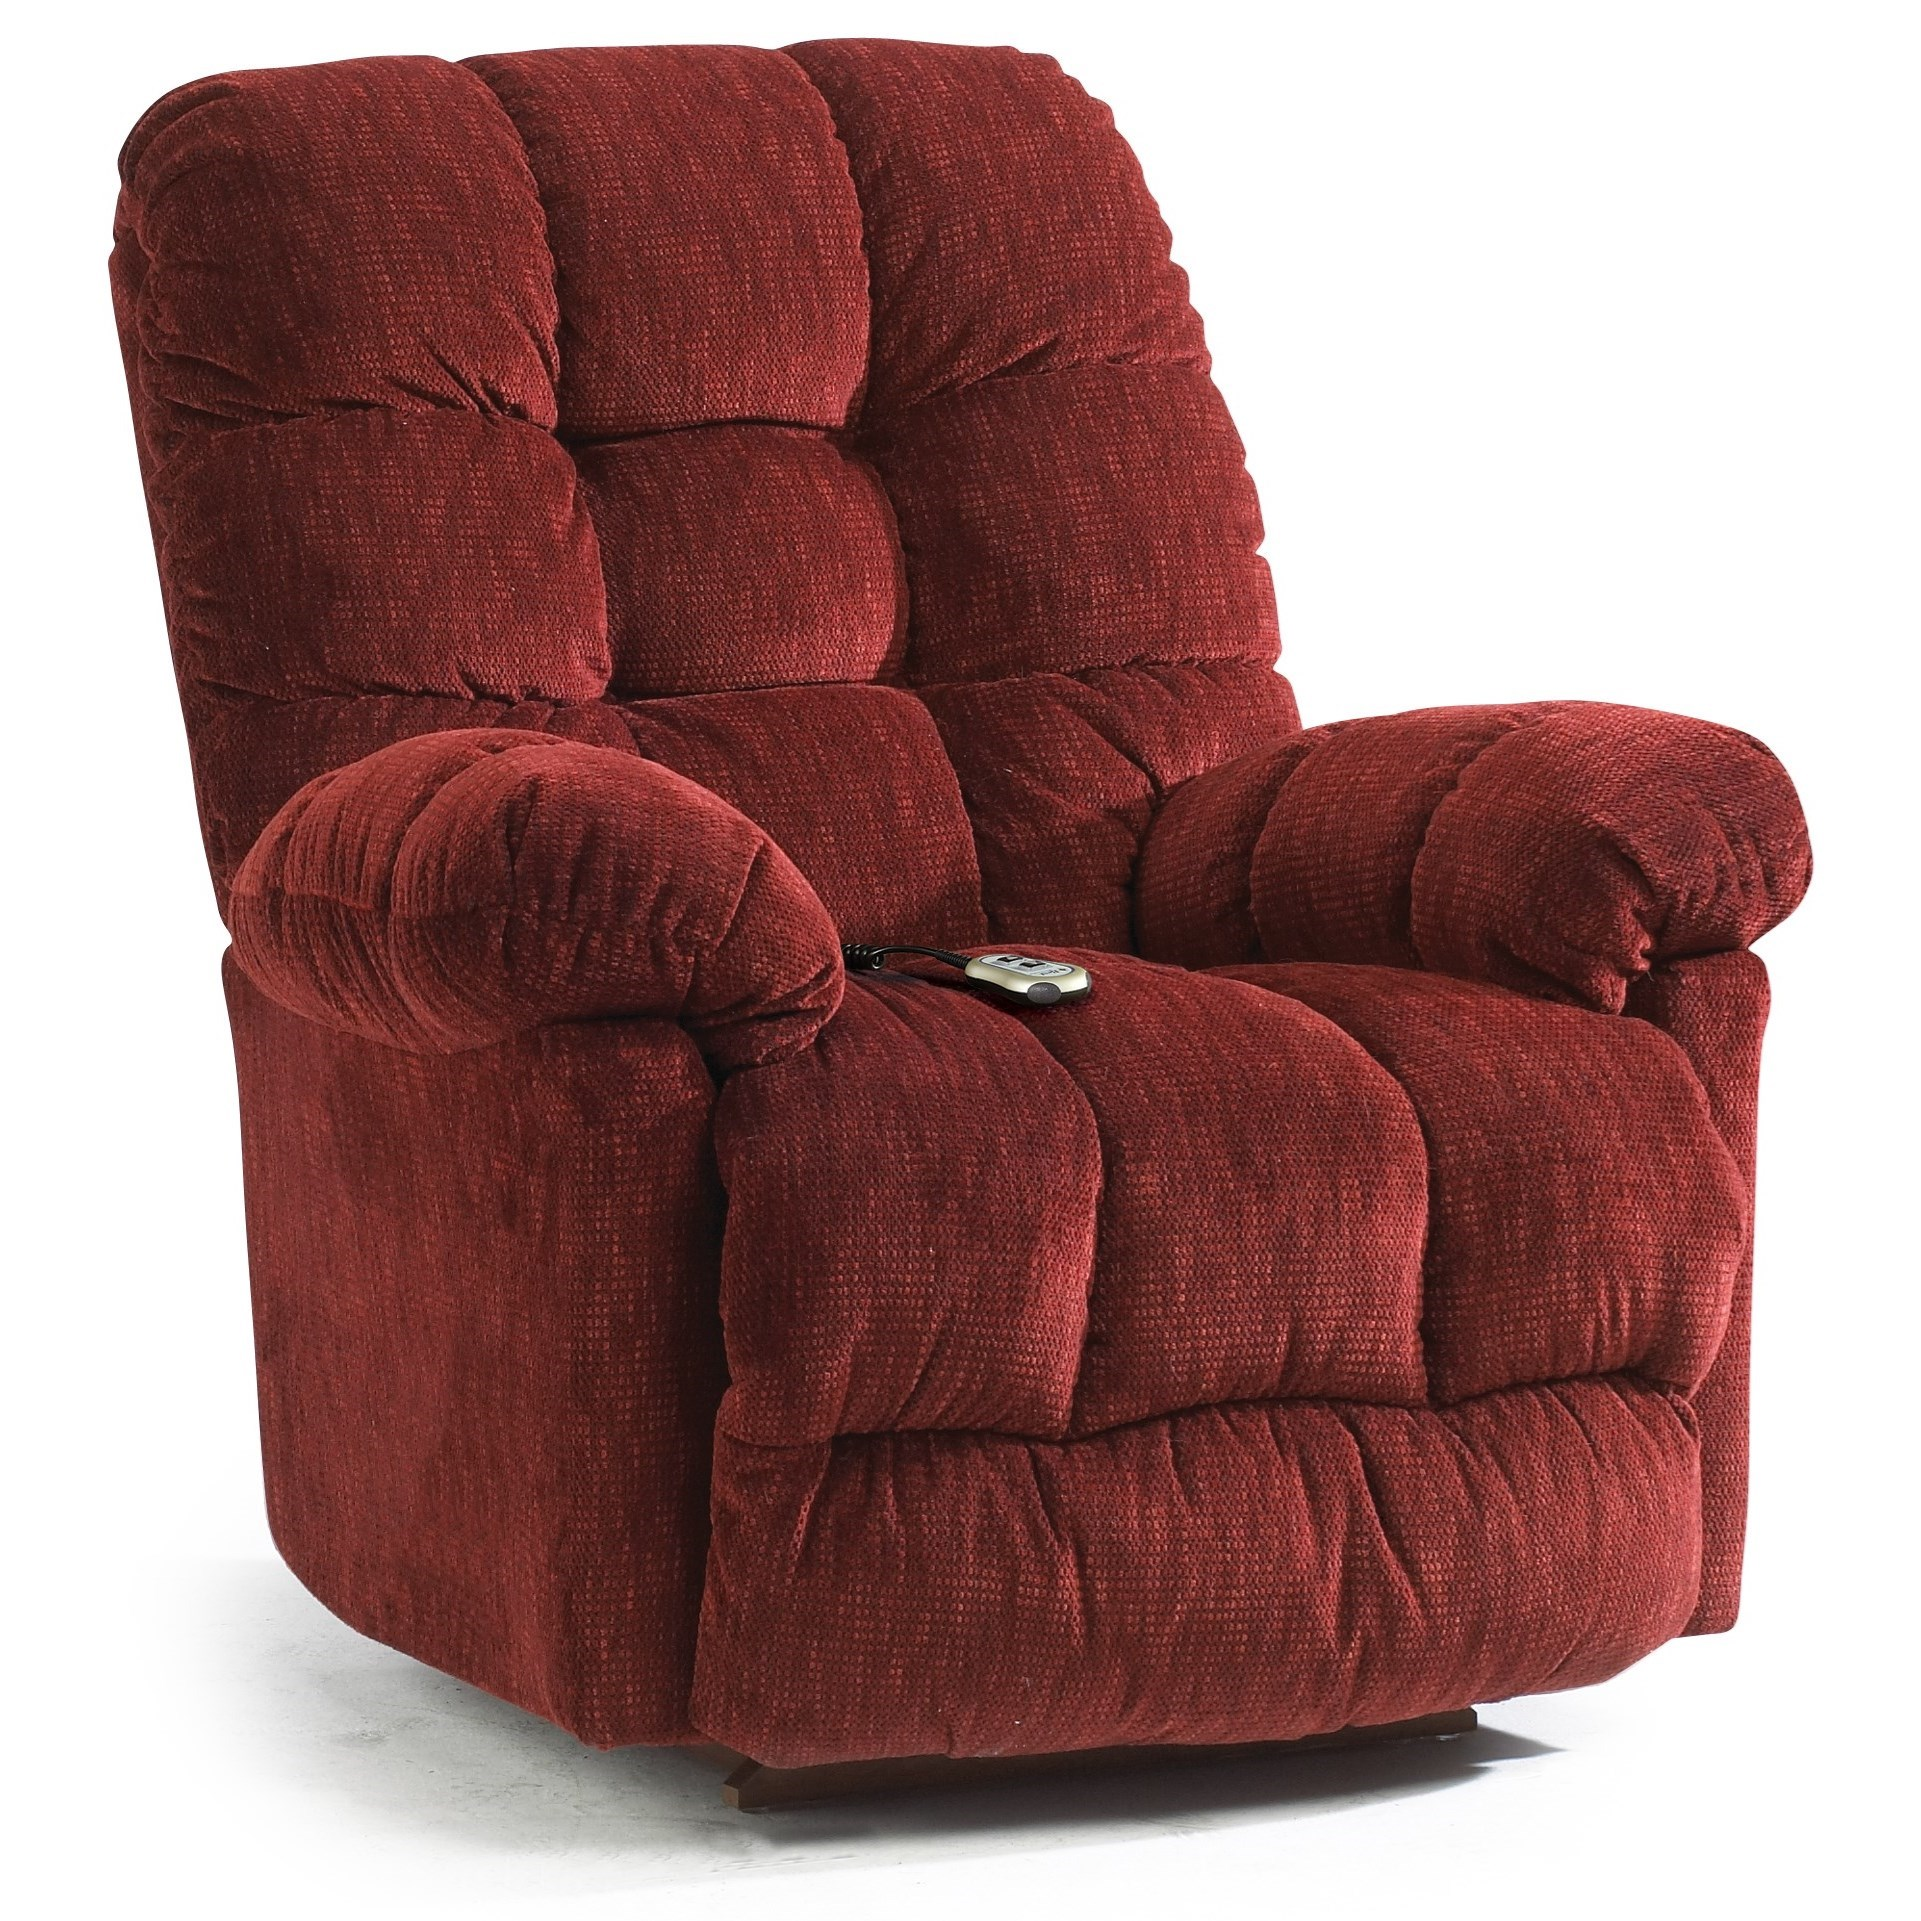 Best Home Furnishings Recliners - Medium Brosmer Power Lift Recliner w/ Pwr Headrest - Item Number: 9MZ81-1